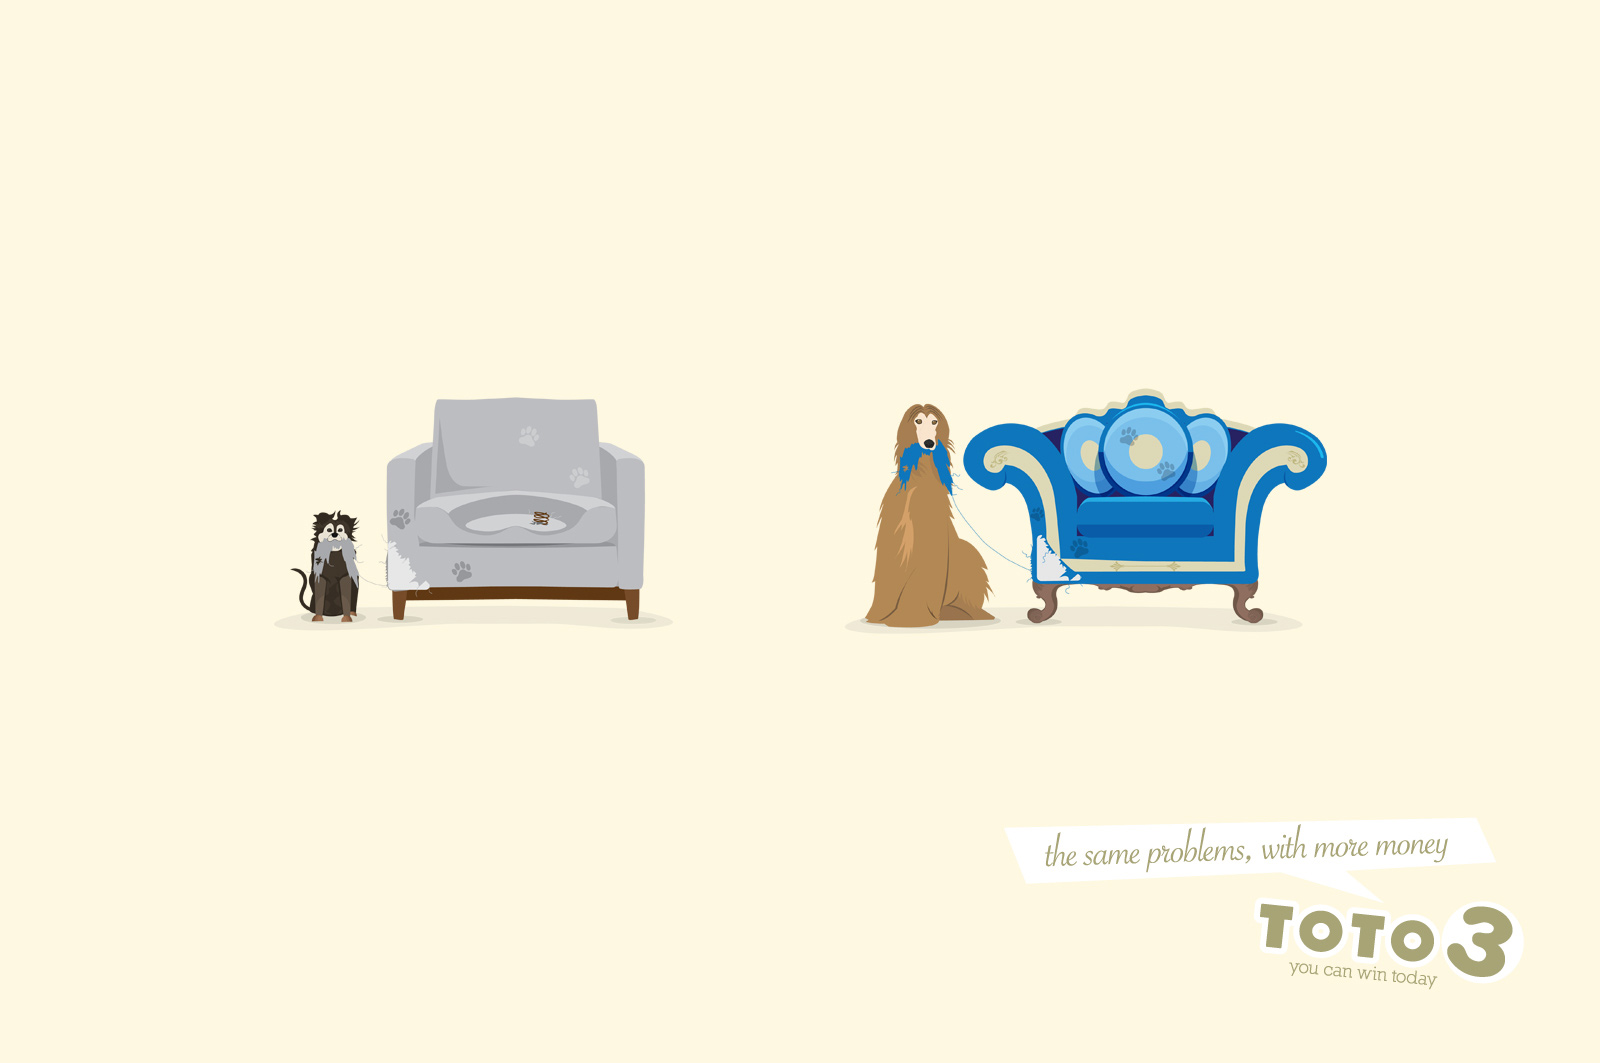 Toto 3 Print Advert By Grey: Sofa | Ads of the World™